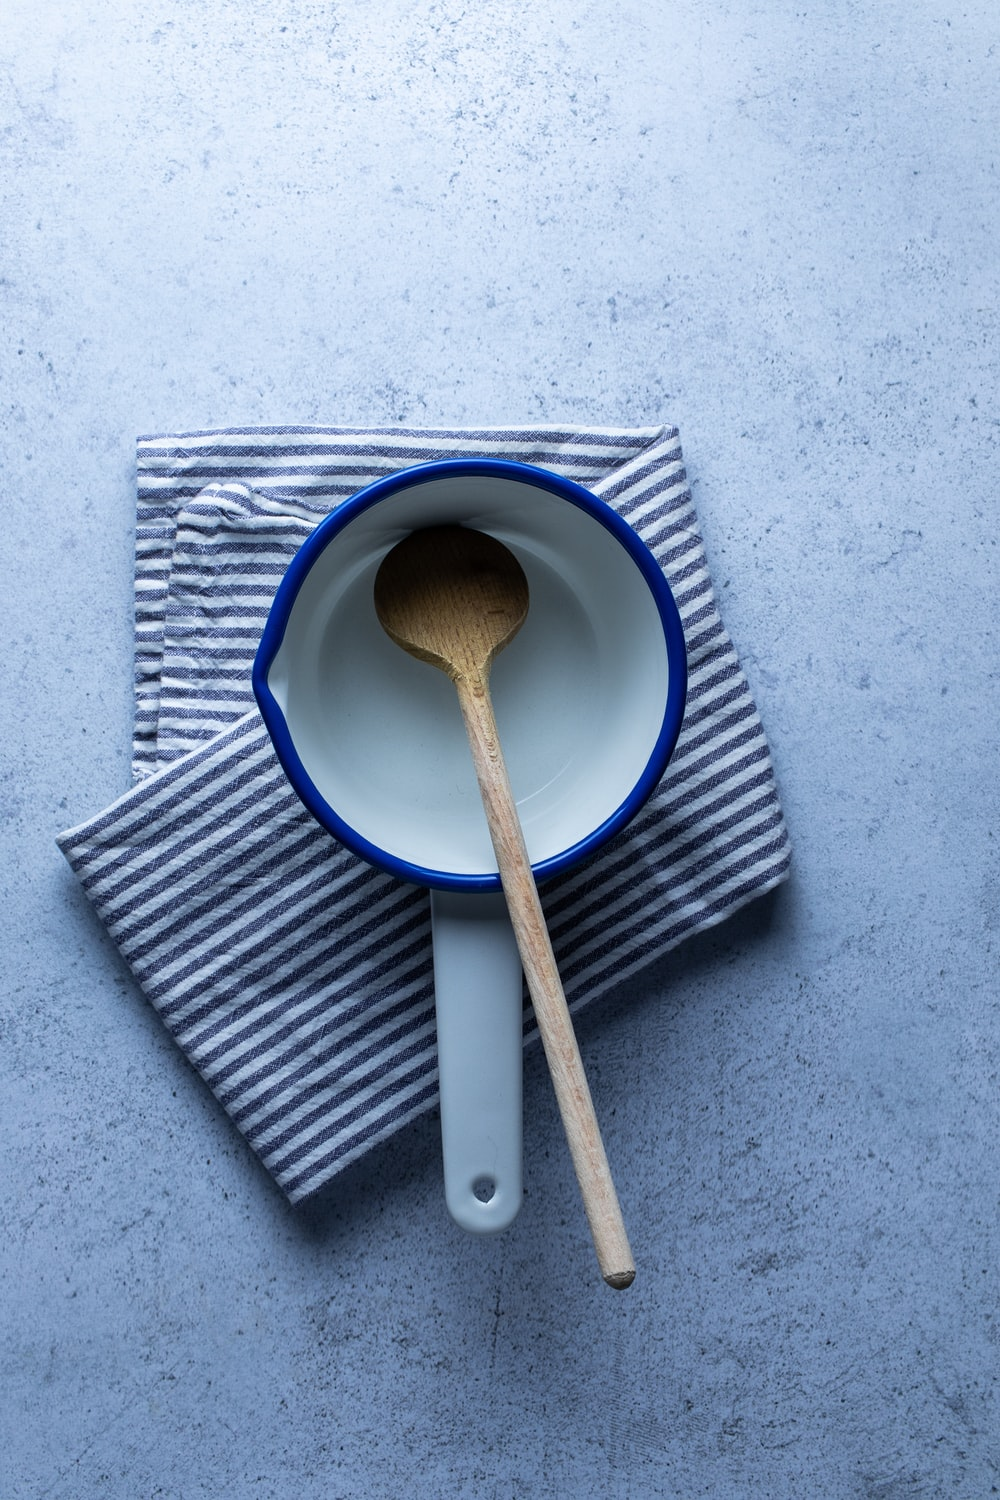 brown wooden spoon on white and blue ceramic plate